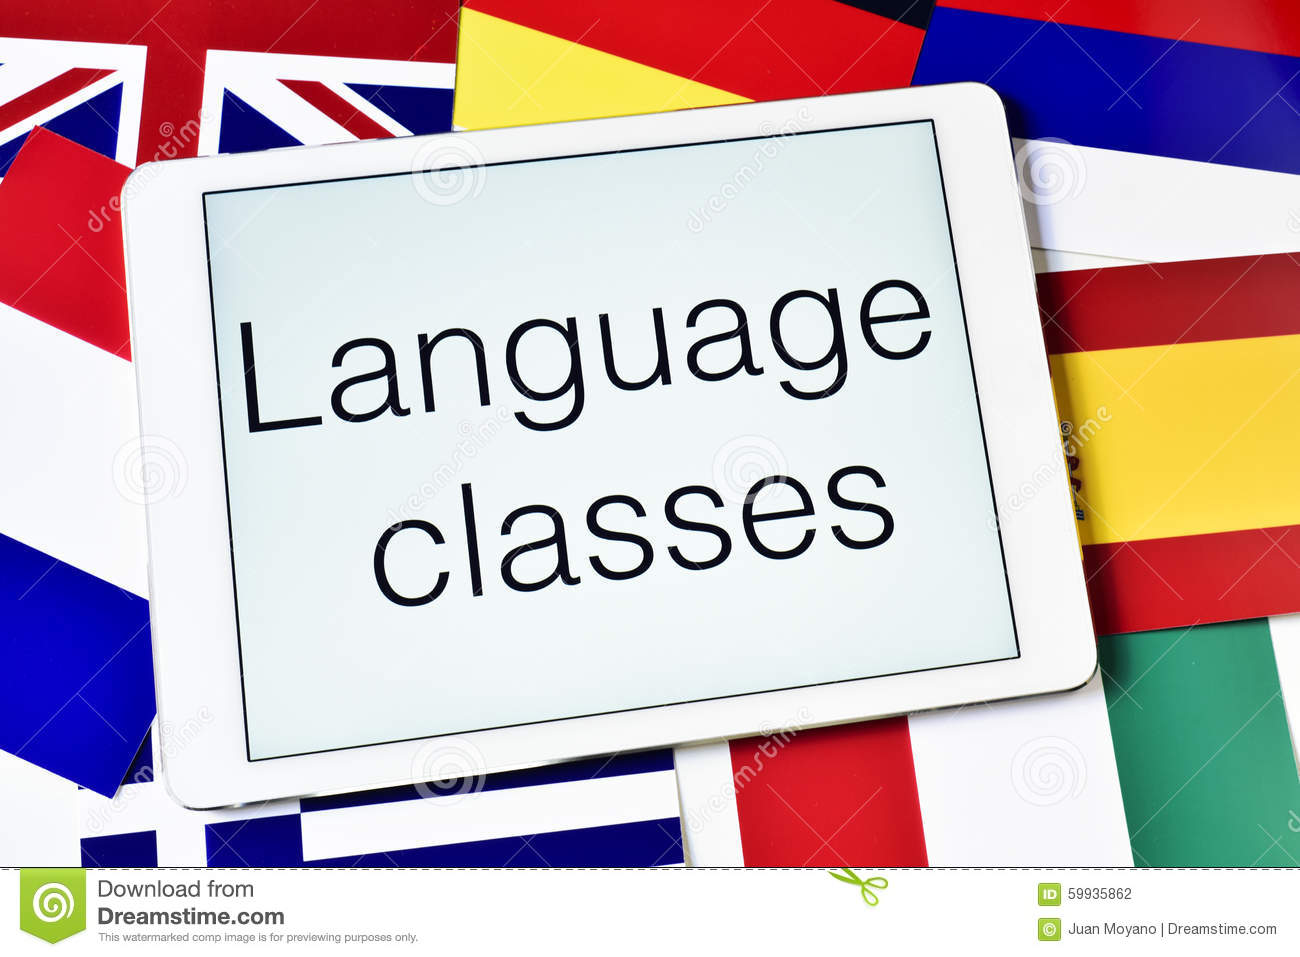 Mongolian Language Classes in Greater Noida | Mongolian Language Course in Greater Noida